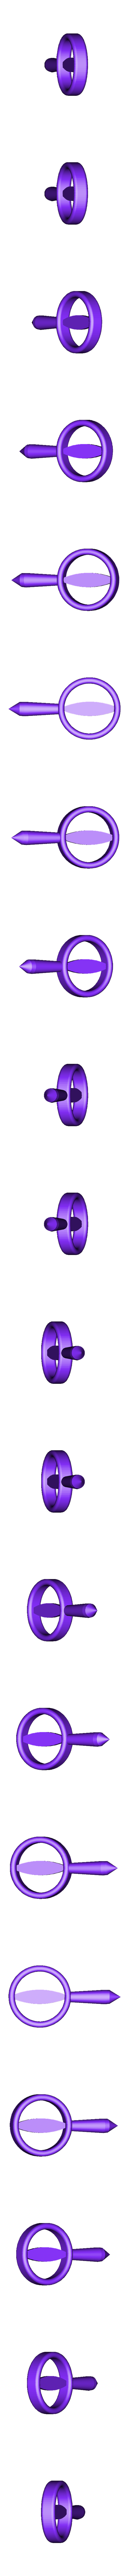 Improved-LensOfTruth-Purple.stl Download free STL file Lens Of Truth - +Dual Extrusion • 3D printable template, Hoofbaugh